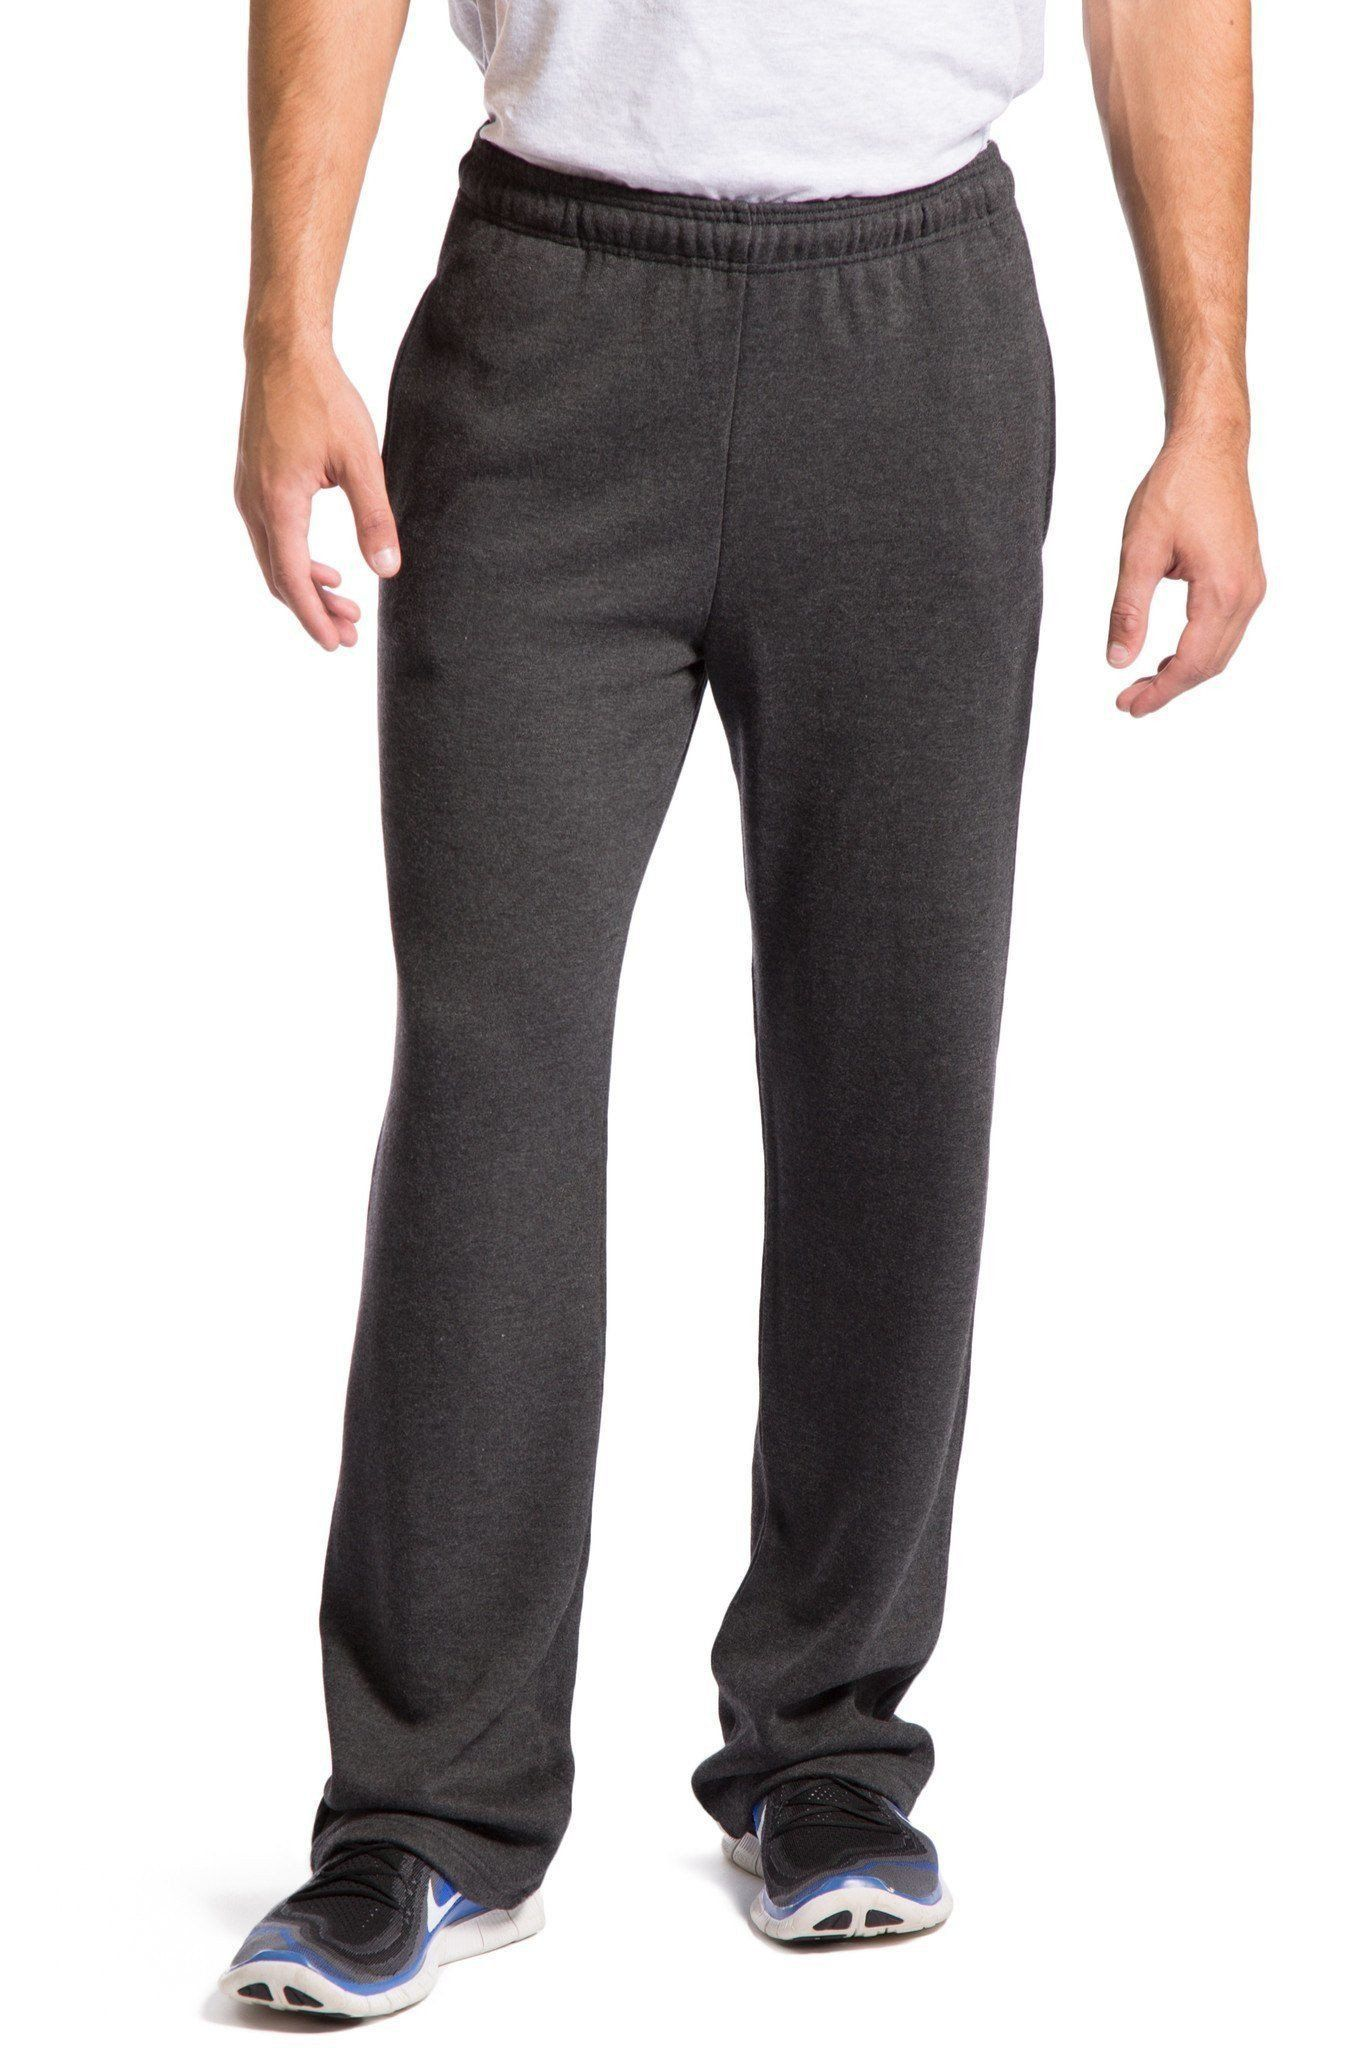 Mens Sweatpants Ecofrabic Mens Athletic Pants Fishers